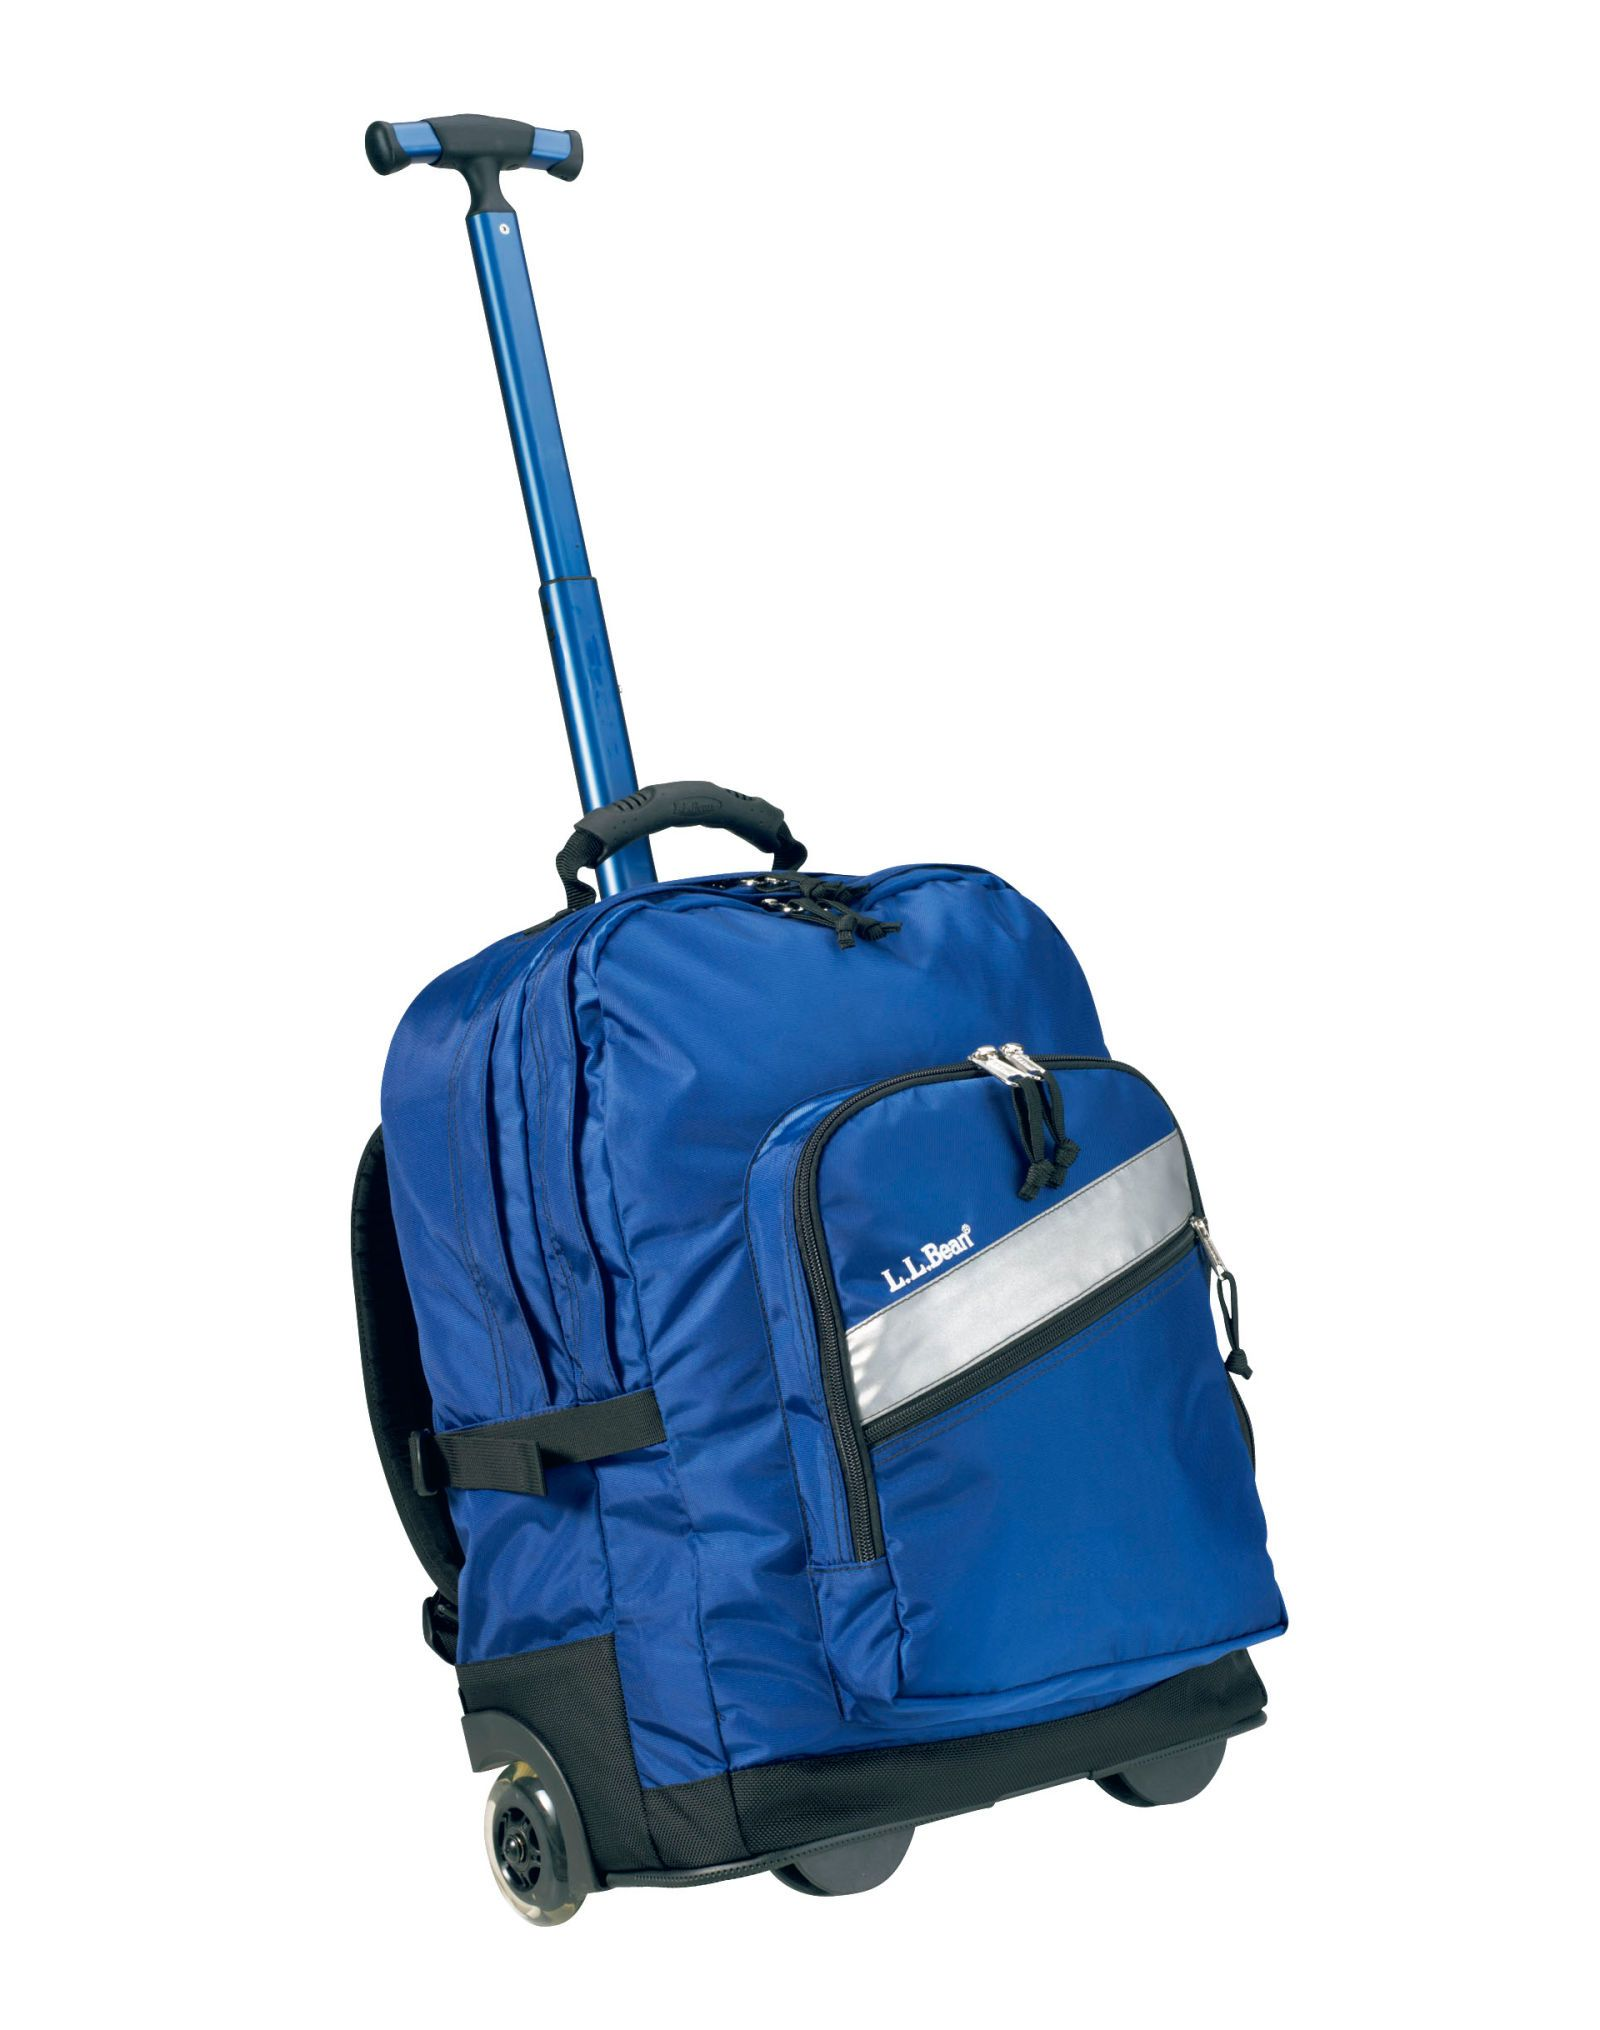 342231c31bdb0 Best Rolling Backpacks With Wheels for Kids | Bags | Backpack with ...